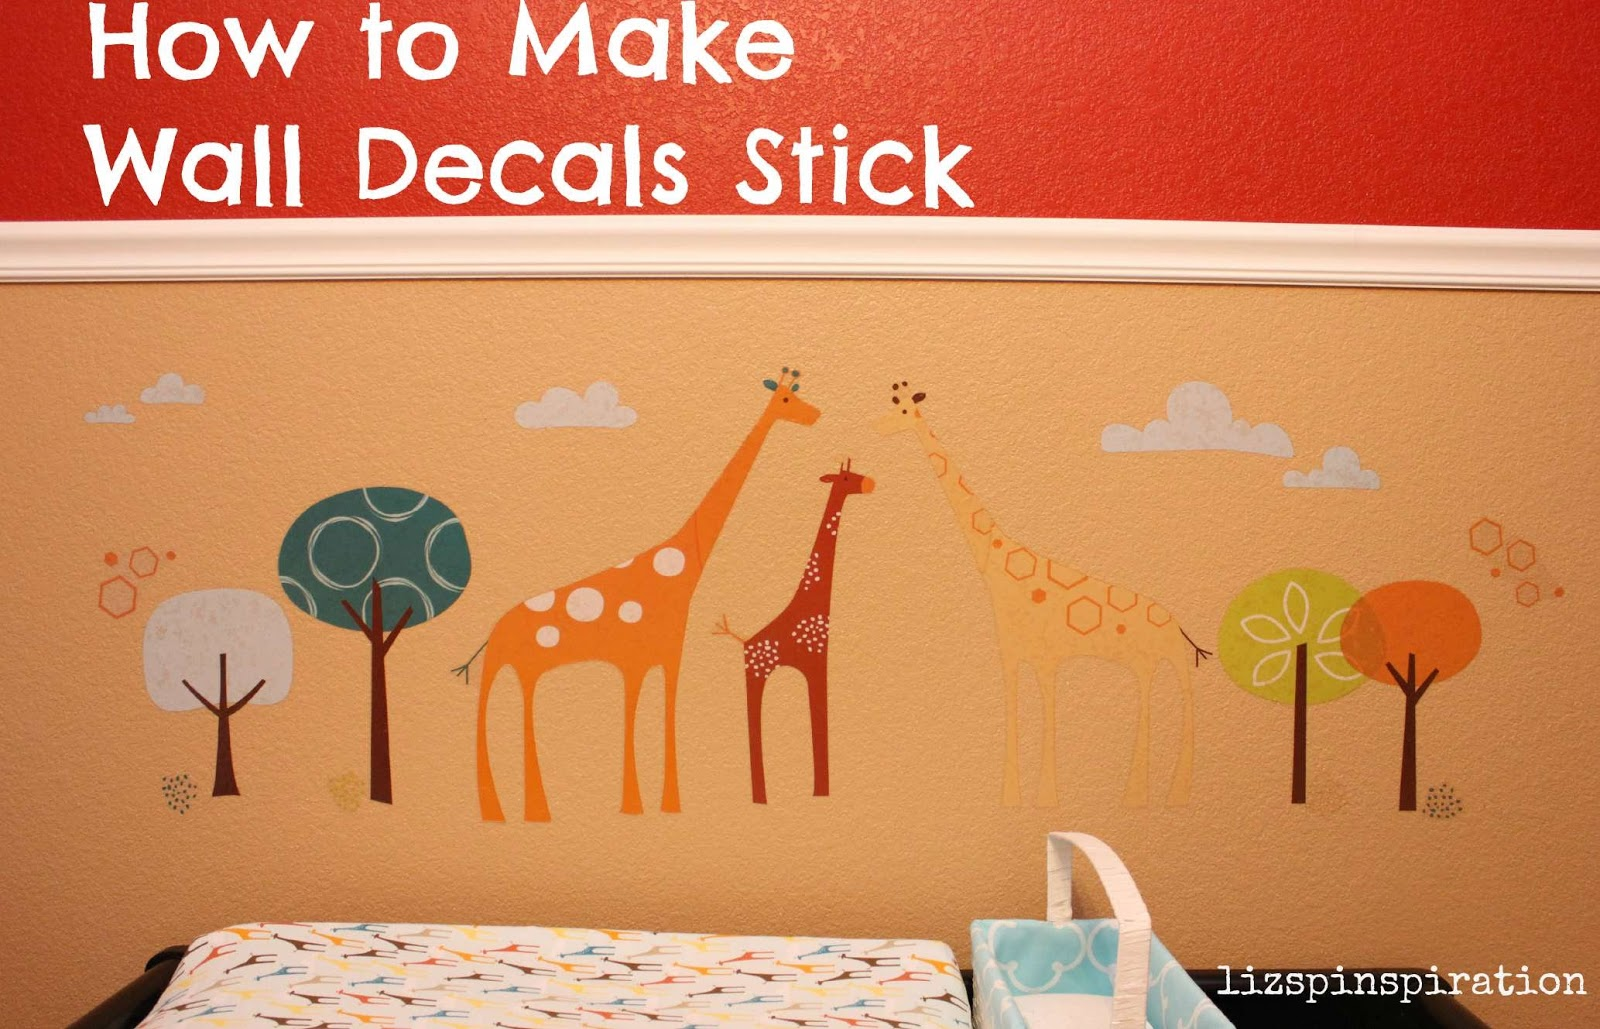 How To Make Wall Decals Stick